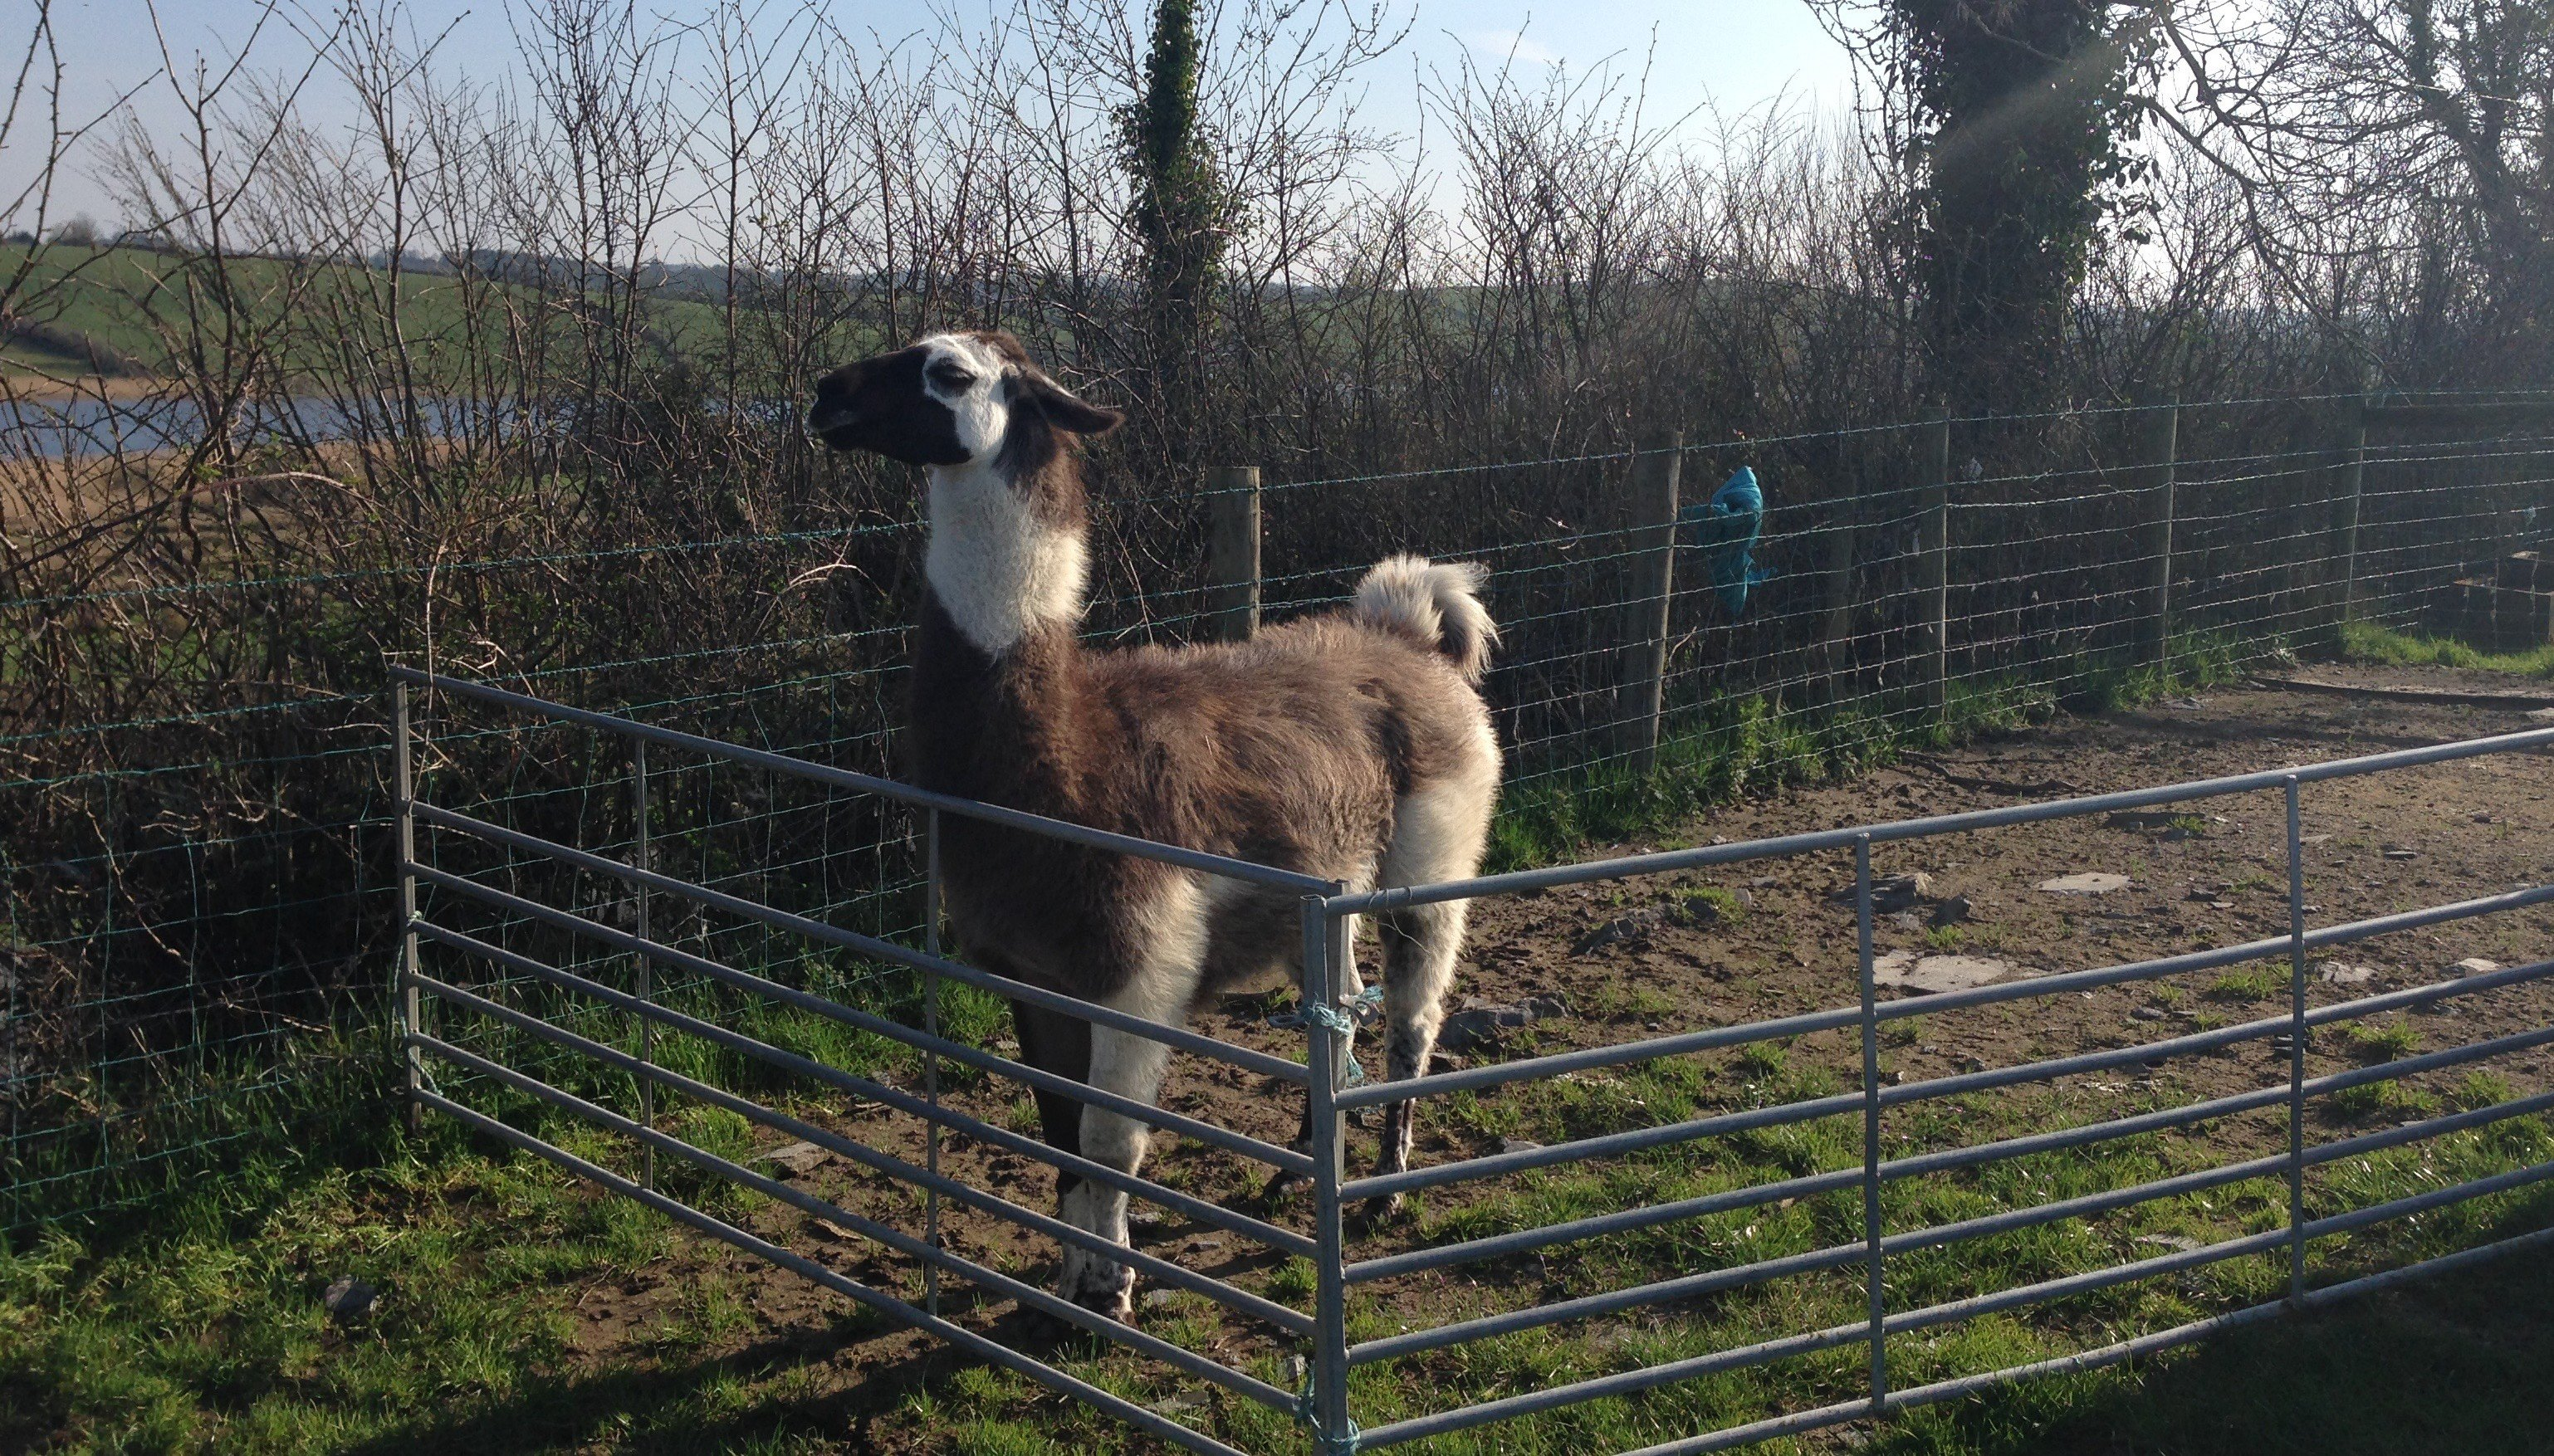 There are No Llamas In Clontarf